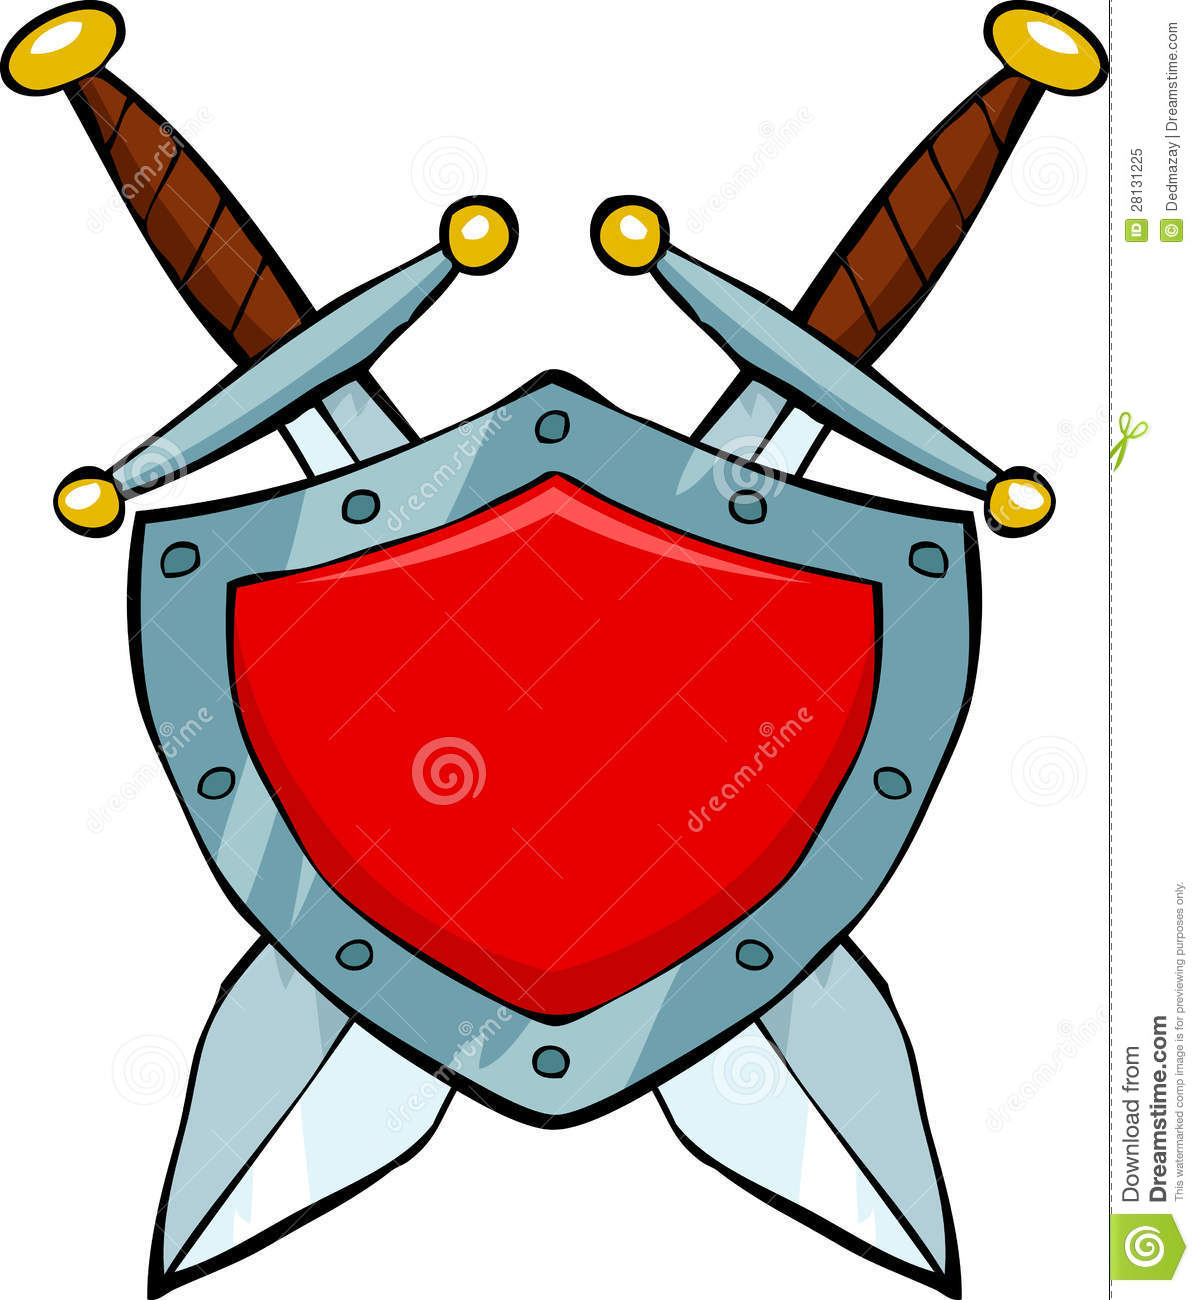 Shield outline coat arms clipart panda free clipart images - Sword 20and 20shield 20symbol